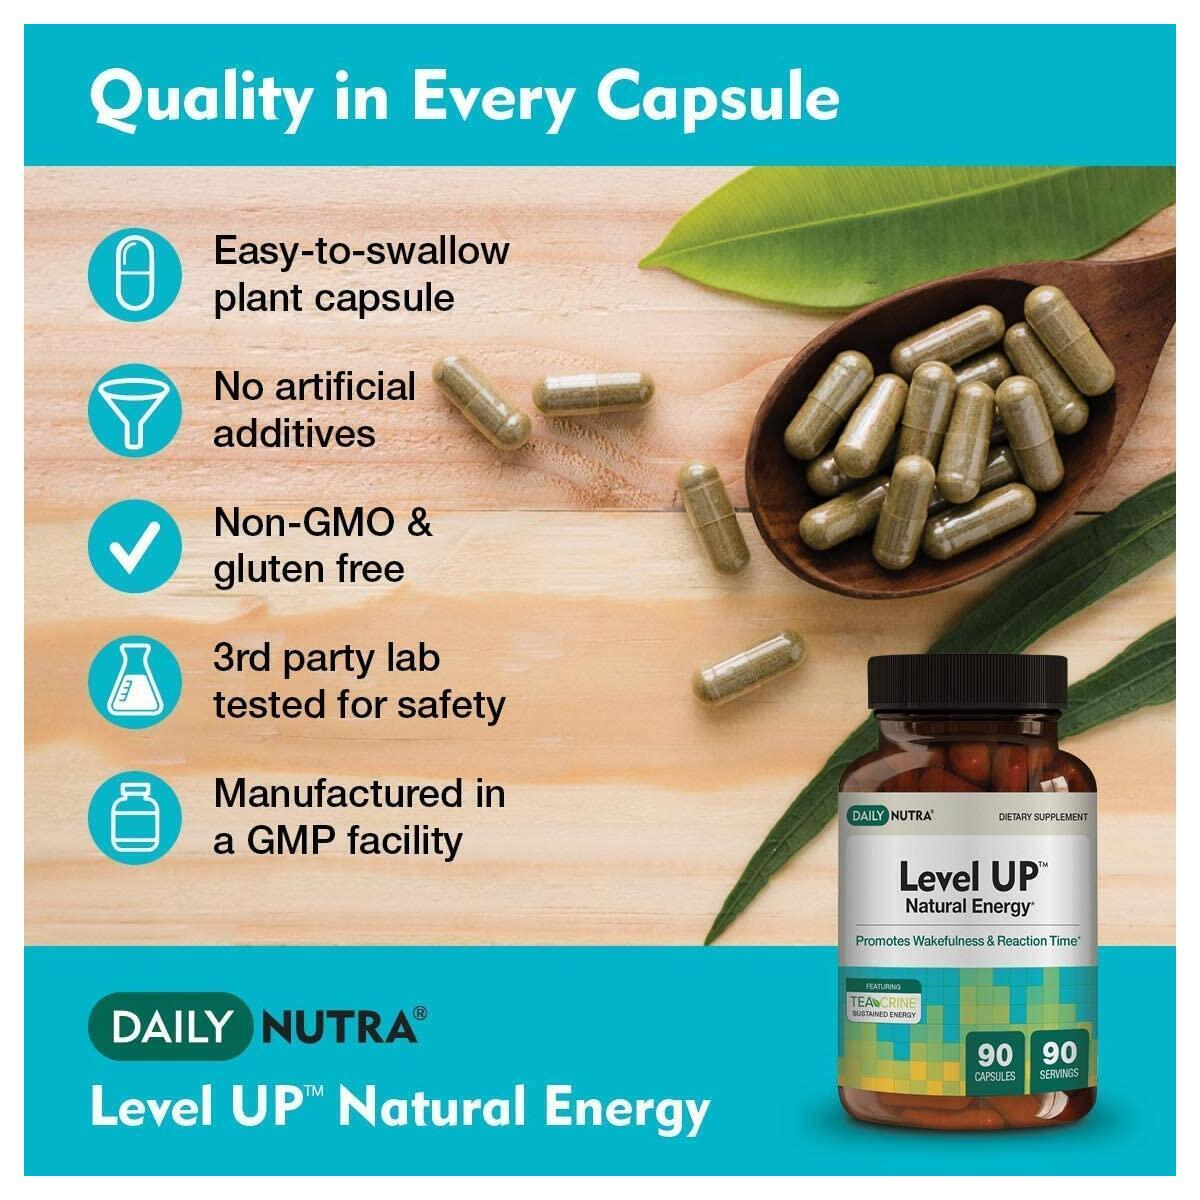 Level UP Natural Energy by DailyNutra - Focus Supplement - Promotes Cognitive Performance & Reaction Time | Energy Pill with Green Tea Extract, TeaCrine, and KSM-66 Ashwagandha (90 Capsules)